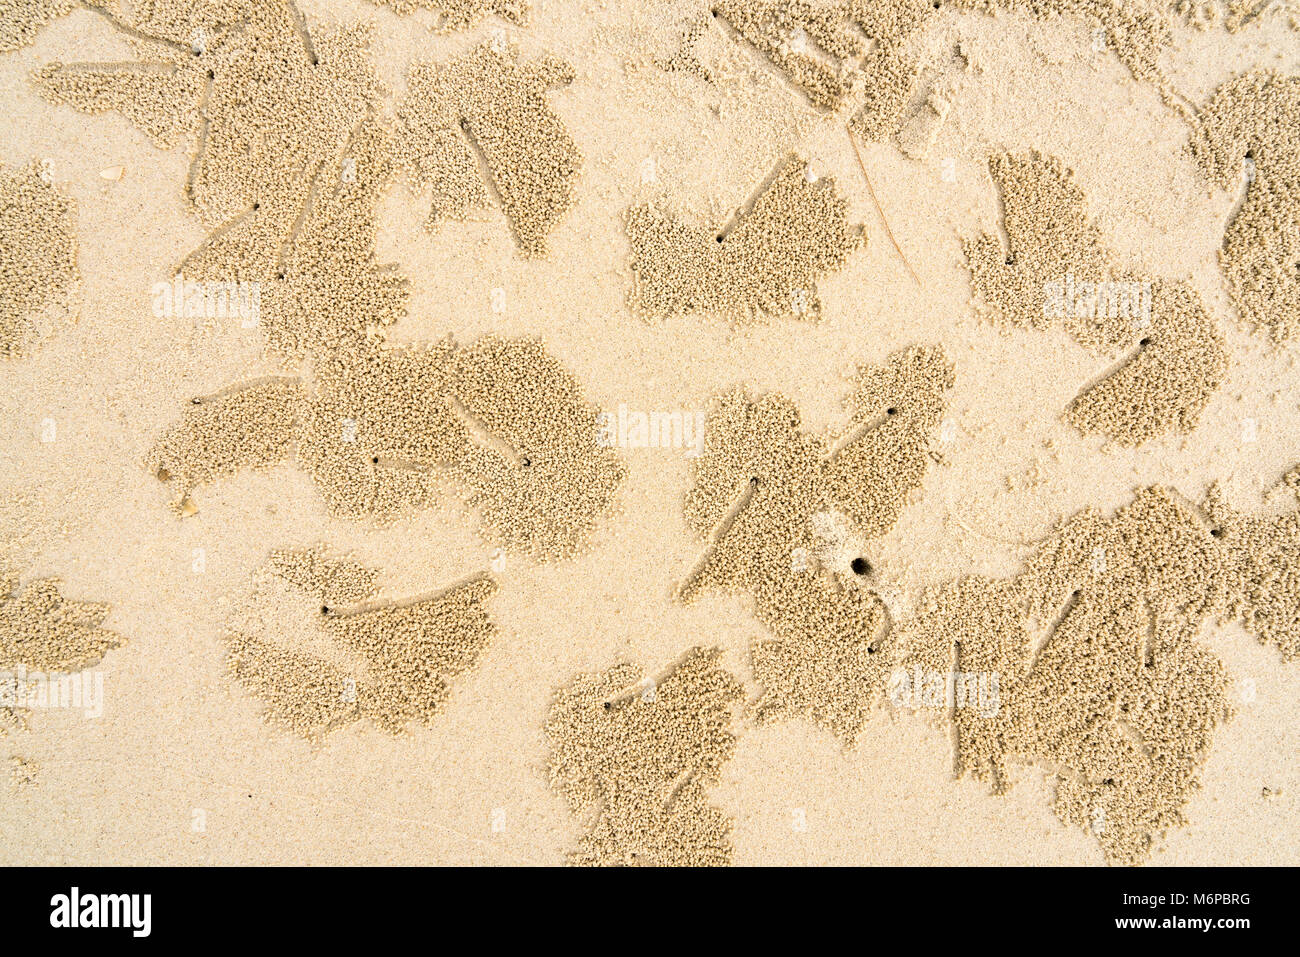 Tropical Island Beach Ambience Sound: Crab Hole Stock Photos & Crab Hole Stock Images